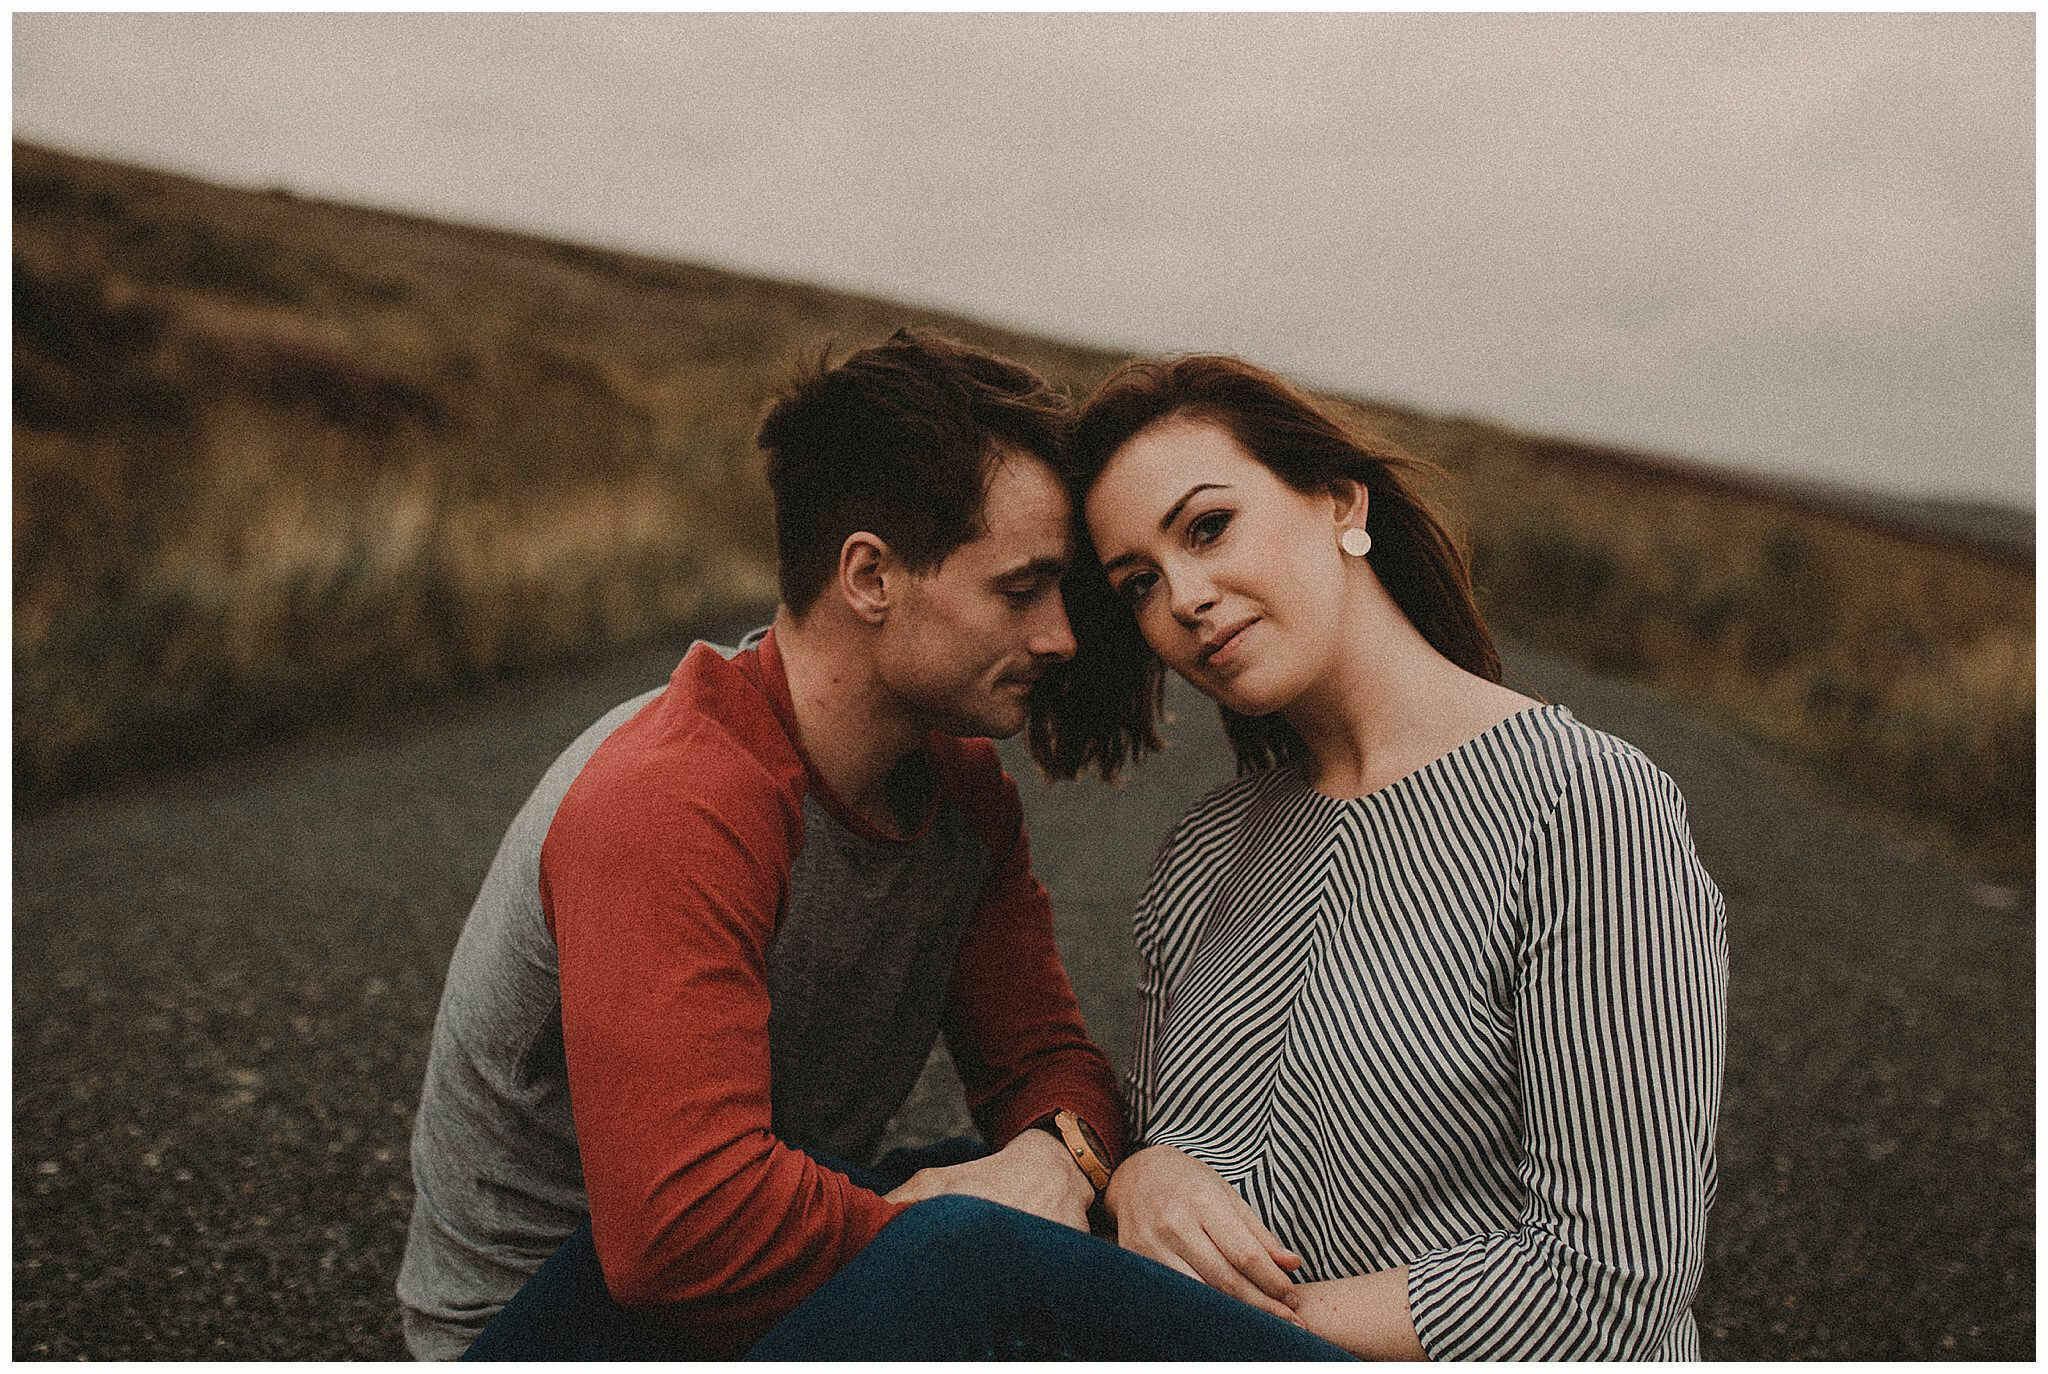 Johnny Corcoran Lifestyle Relaxed Unposed documentary Natural Wedding Portrait Photography Dublin Ireland 2016 1 - Fun and Relaxed wedding and elopement photography in Ireland, perfect for adventurous and outdoorsy couples